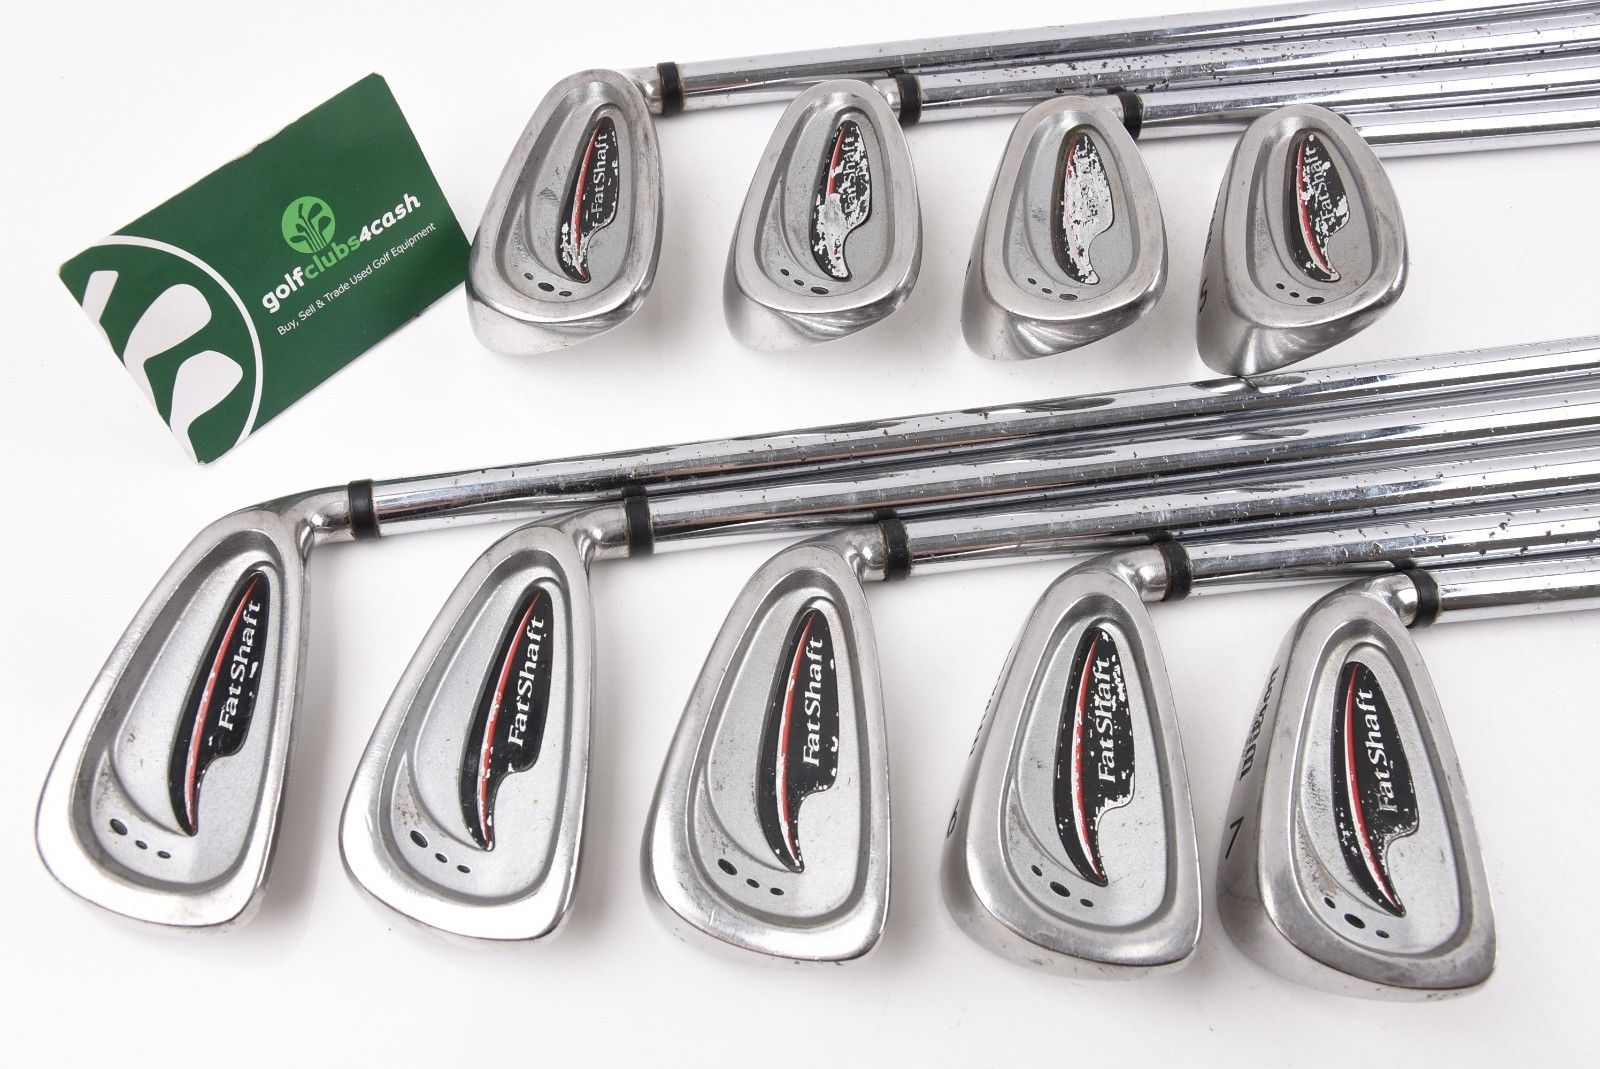 e5906677baf Iron Set Archives - Page 49 of 50 - Golf Clubs 4 Cash